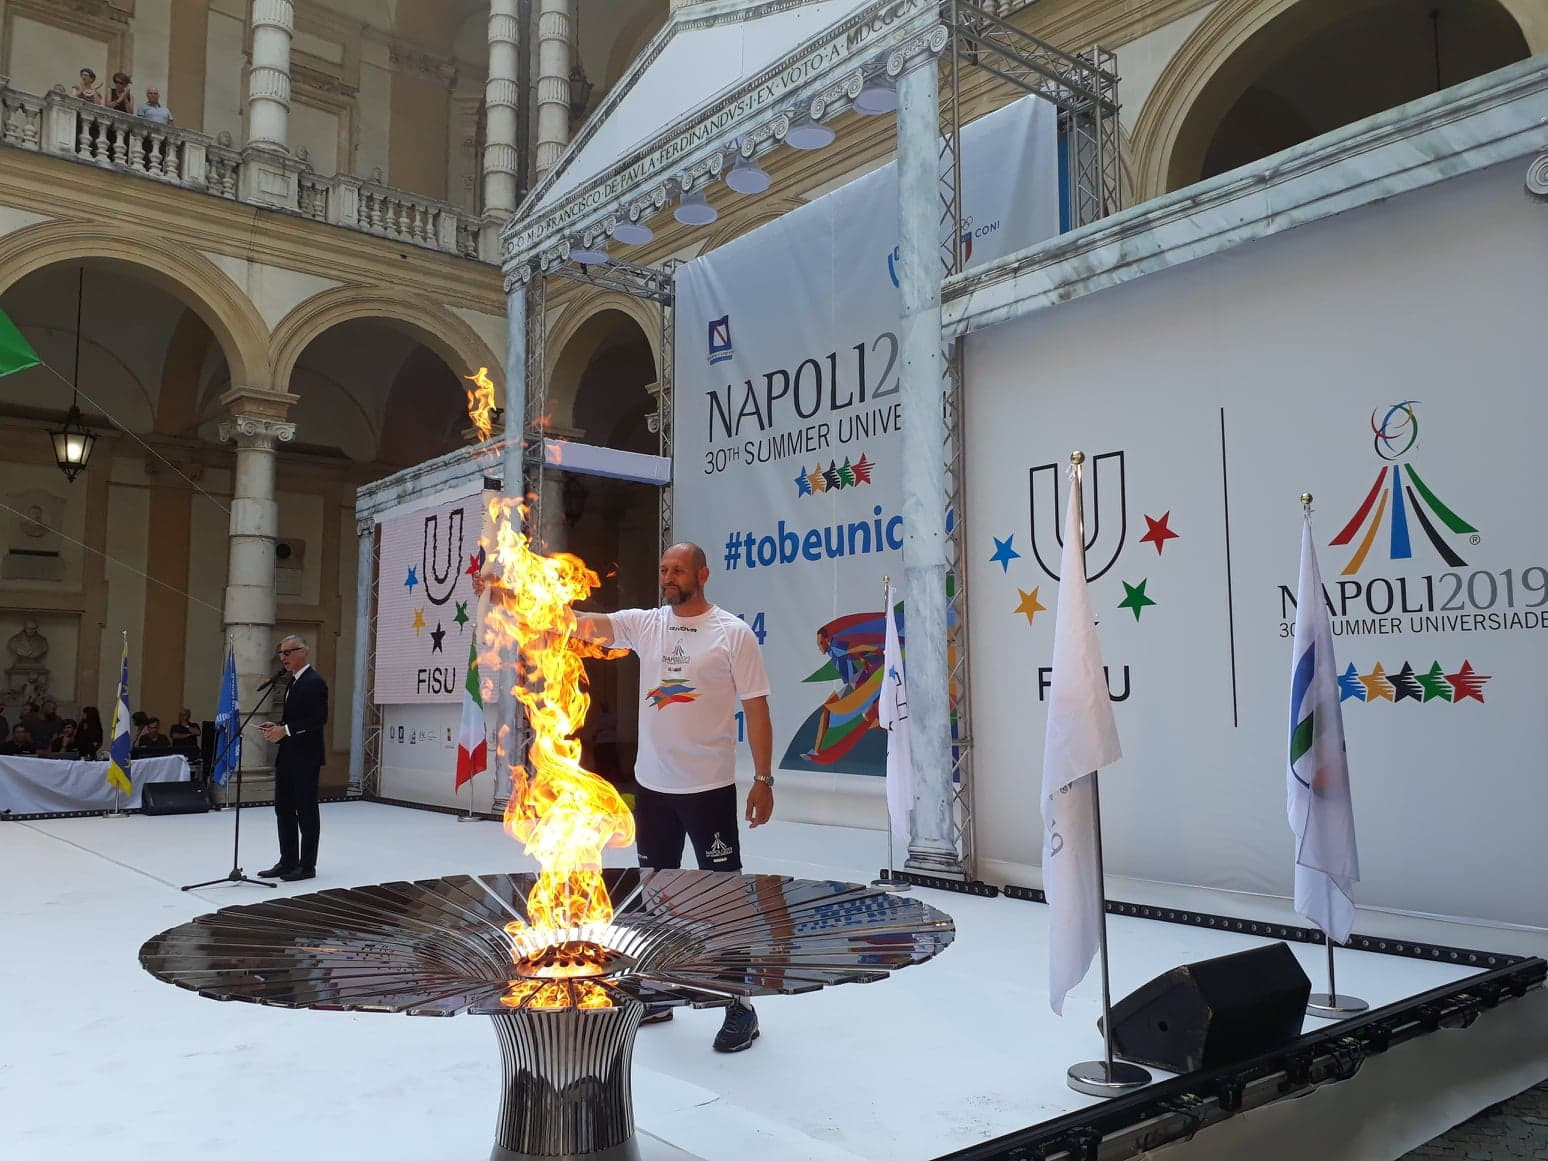 Naples 2019 Torch Relay begins at University of Turin